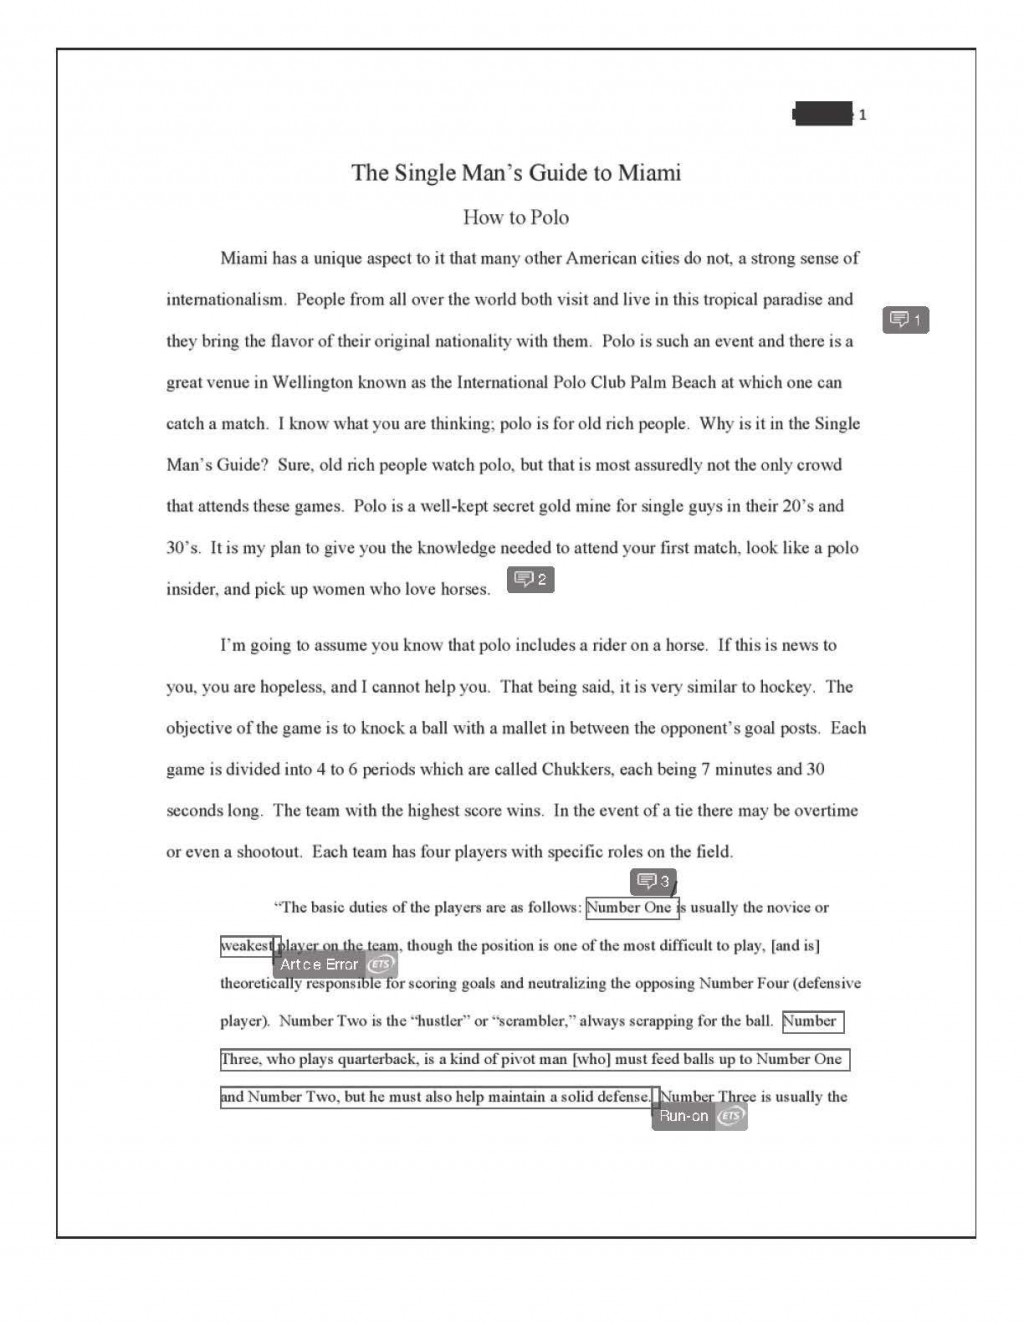 008 Example Of An Essay About Education Examples Informative Essays Writing Utopia Instruction Final How To Polo Redacted P Quiz Prewriting Quizlet Sensational Write 4th Grade Thesis Large